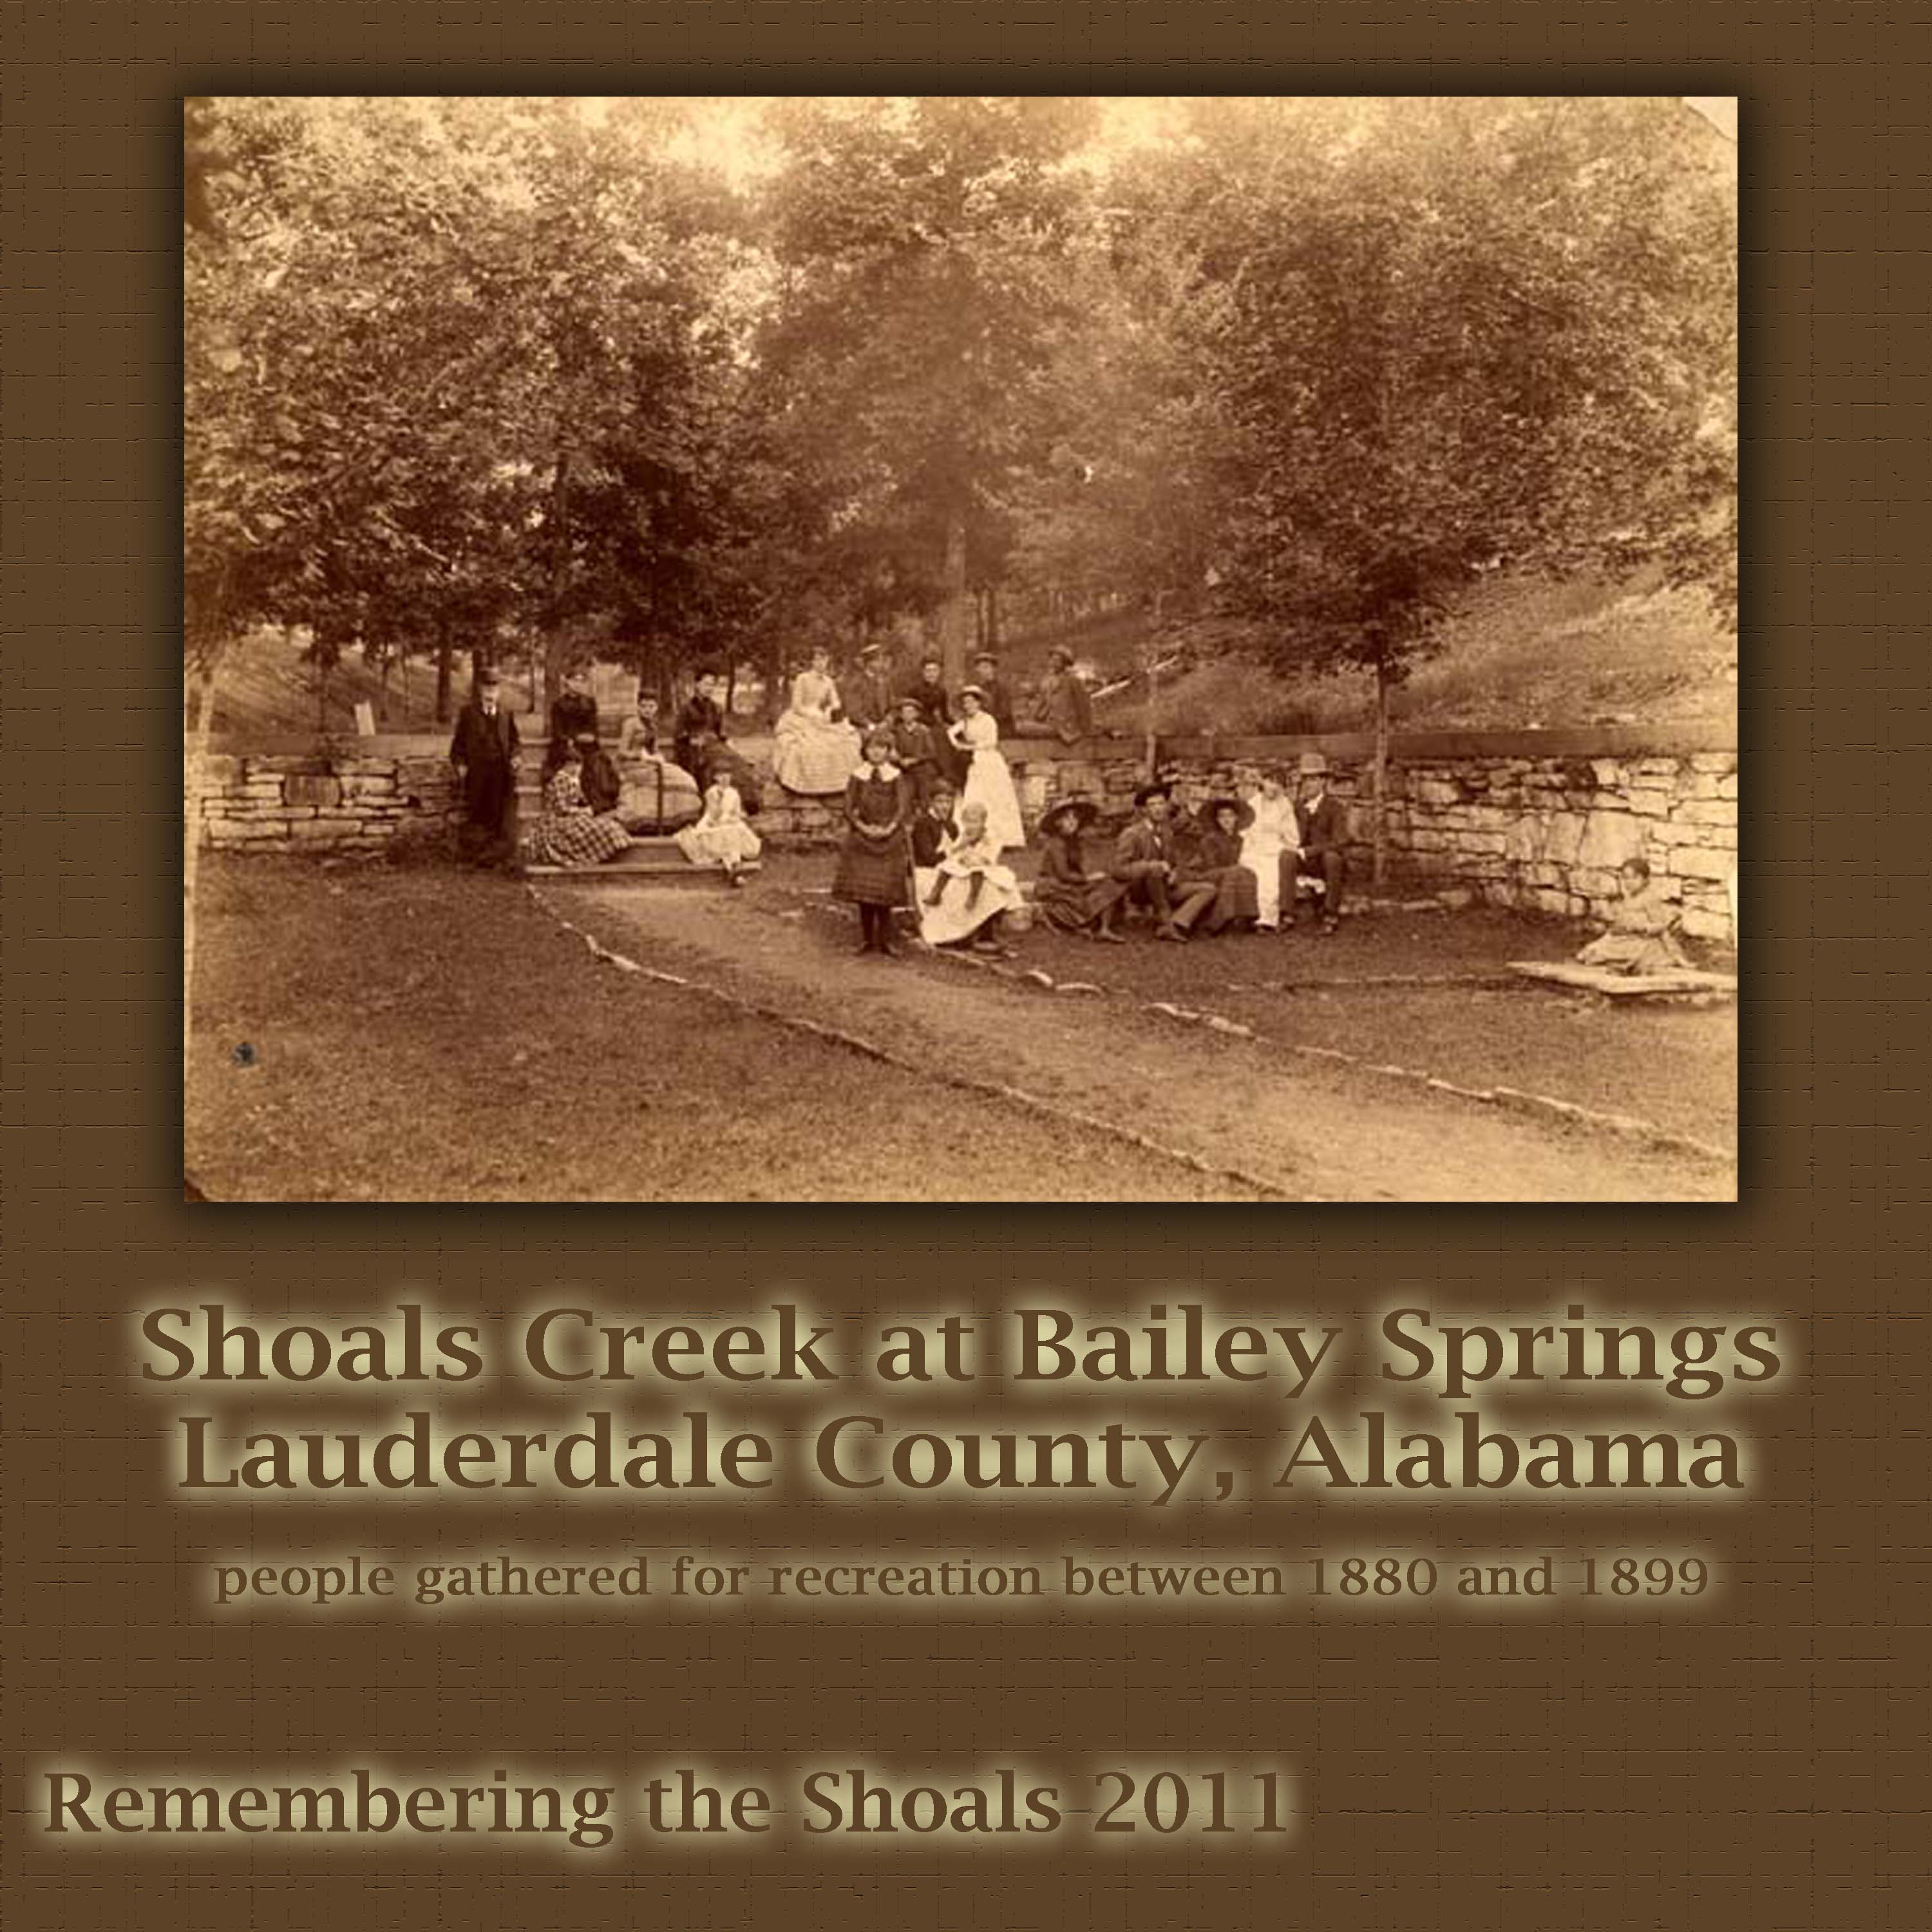 Alabama wilcox county catherine - Photgraph On Shoals Creek At Bailey Springs In Lauderdale County Al 1880s